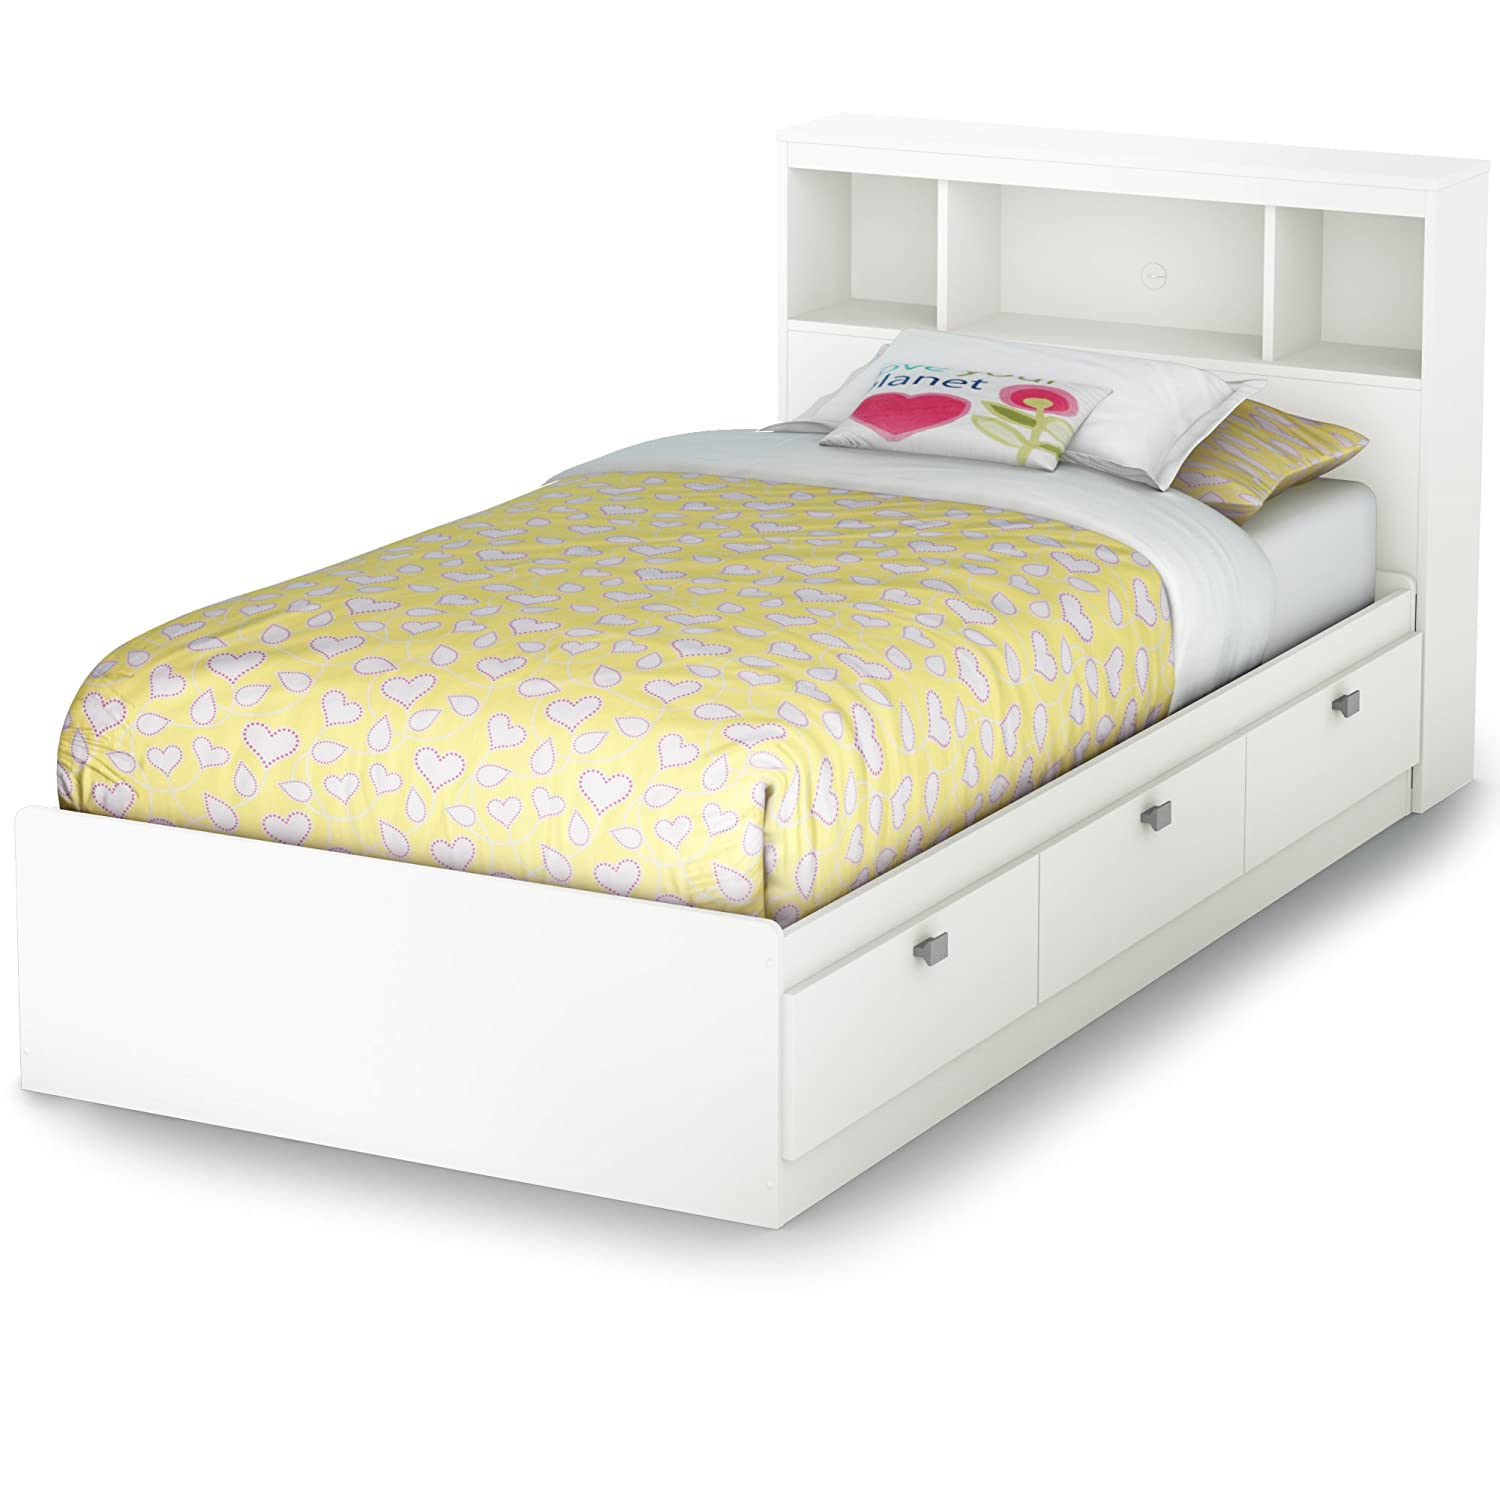 amazoncom south shore south shore spark twin storage bed and bookcase headboard pure white twin pure white kitchen dining